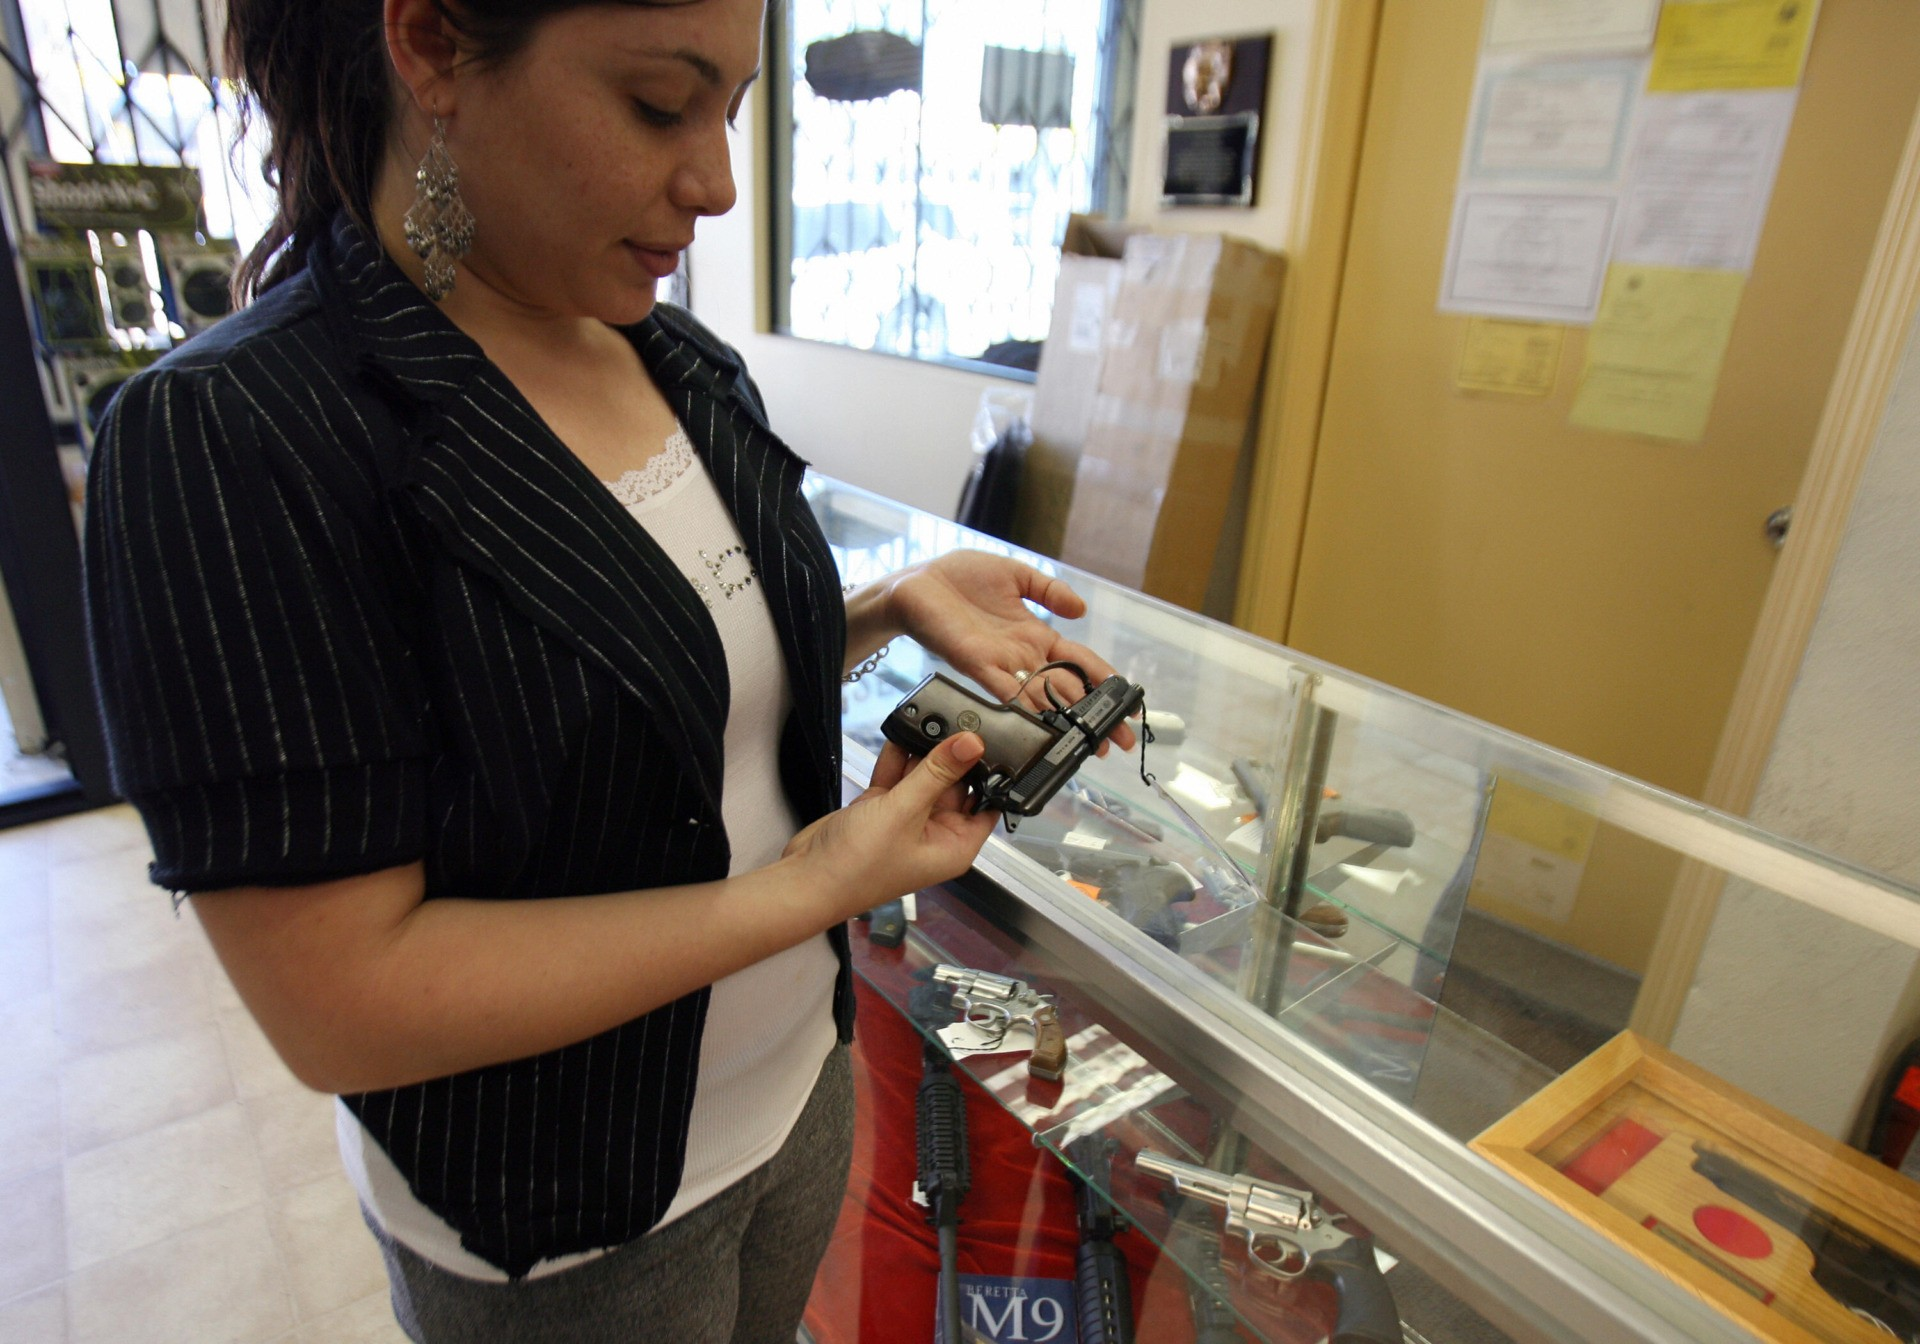 Glendale, UNITED STATES: Aida Khachikyan buys a gun at the Gun Gallery in Glendale, California, 18 April 2007. The massacre at Virginia Tech has ignited fresh talk in the Democratic-led US Congress about tightening US gun laws but it is doubtful enough lawmakers will tackle the politically charged issue. With so many citizens in love with their guns and defensive of their right under the Constitution to keep and bear arms, politicians are reluctant to take on gun owners or the powerful gun lobby. AFP PHOTO/GABRIEL BOUYS (Photo credit should read GABRIEL BOUYS/AFP via Getty Images)